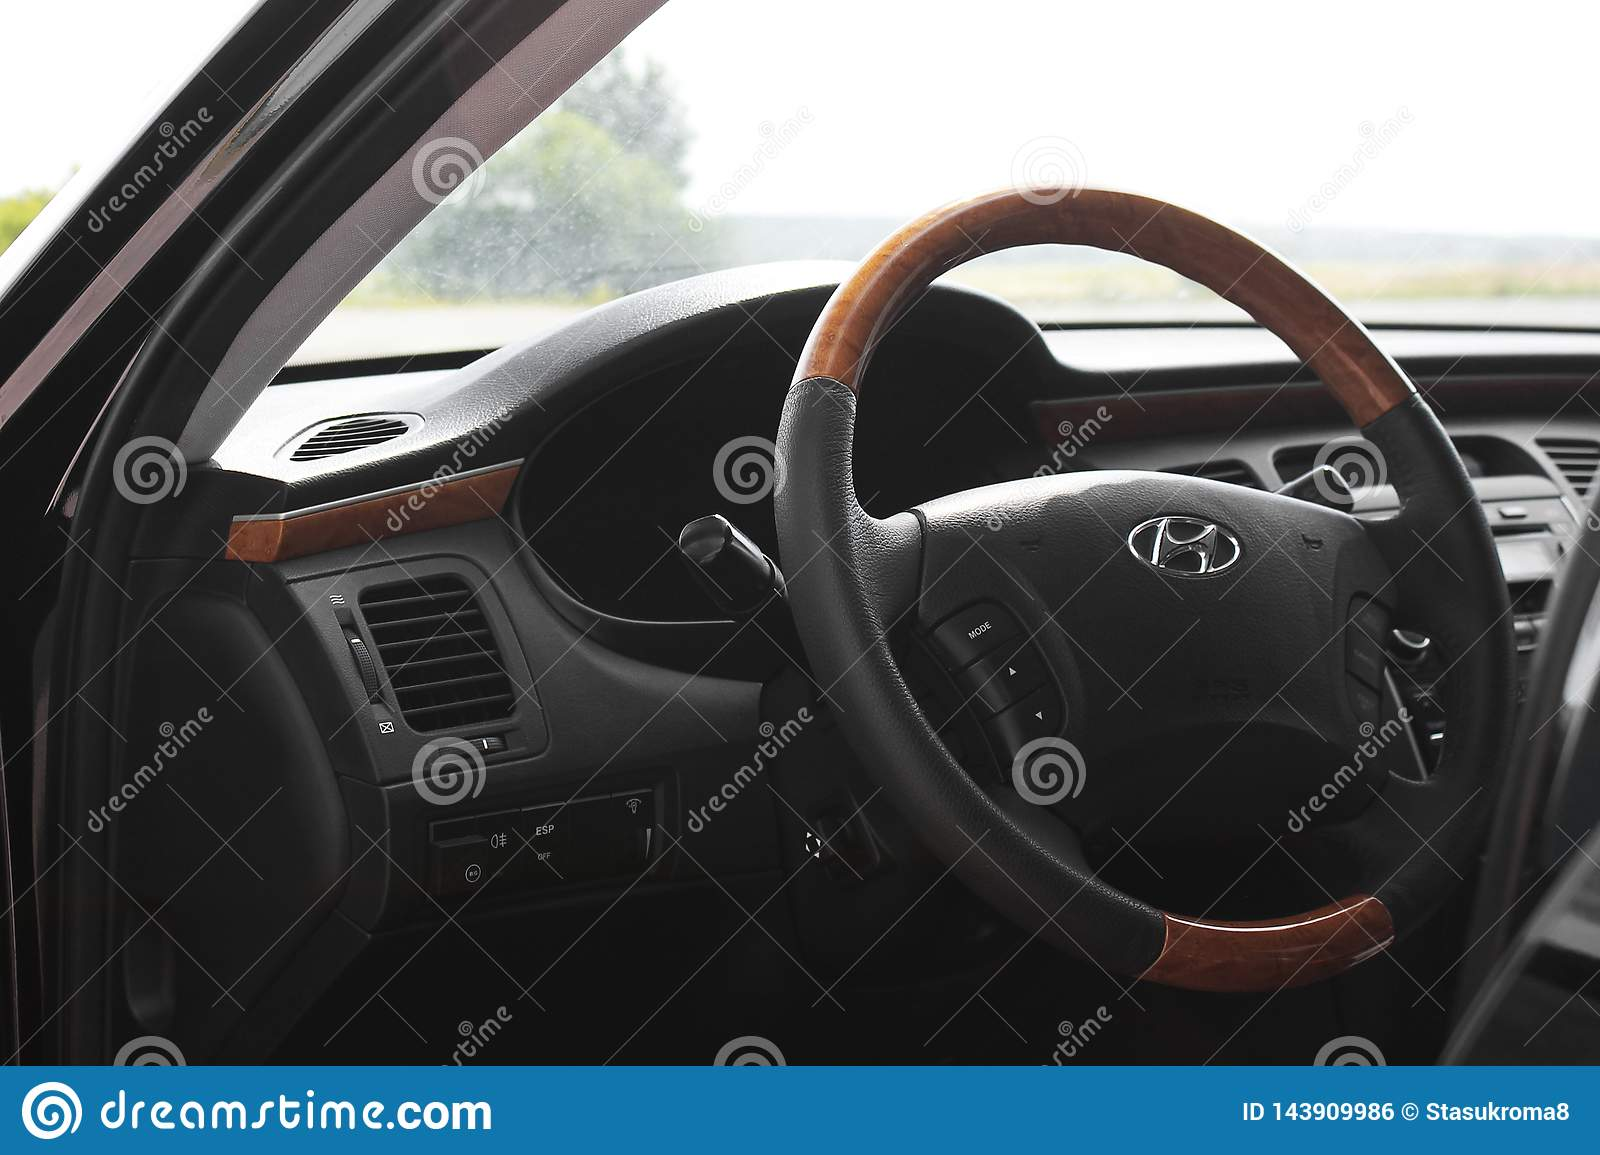 Kiev, Ukraine - August 6, 2018: Hyundai Grandeur. View of the interior of a modern automobile showing the dashboard